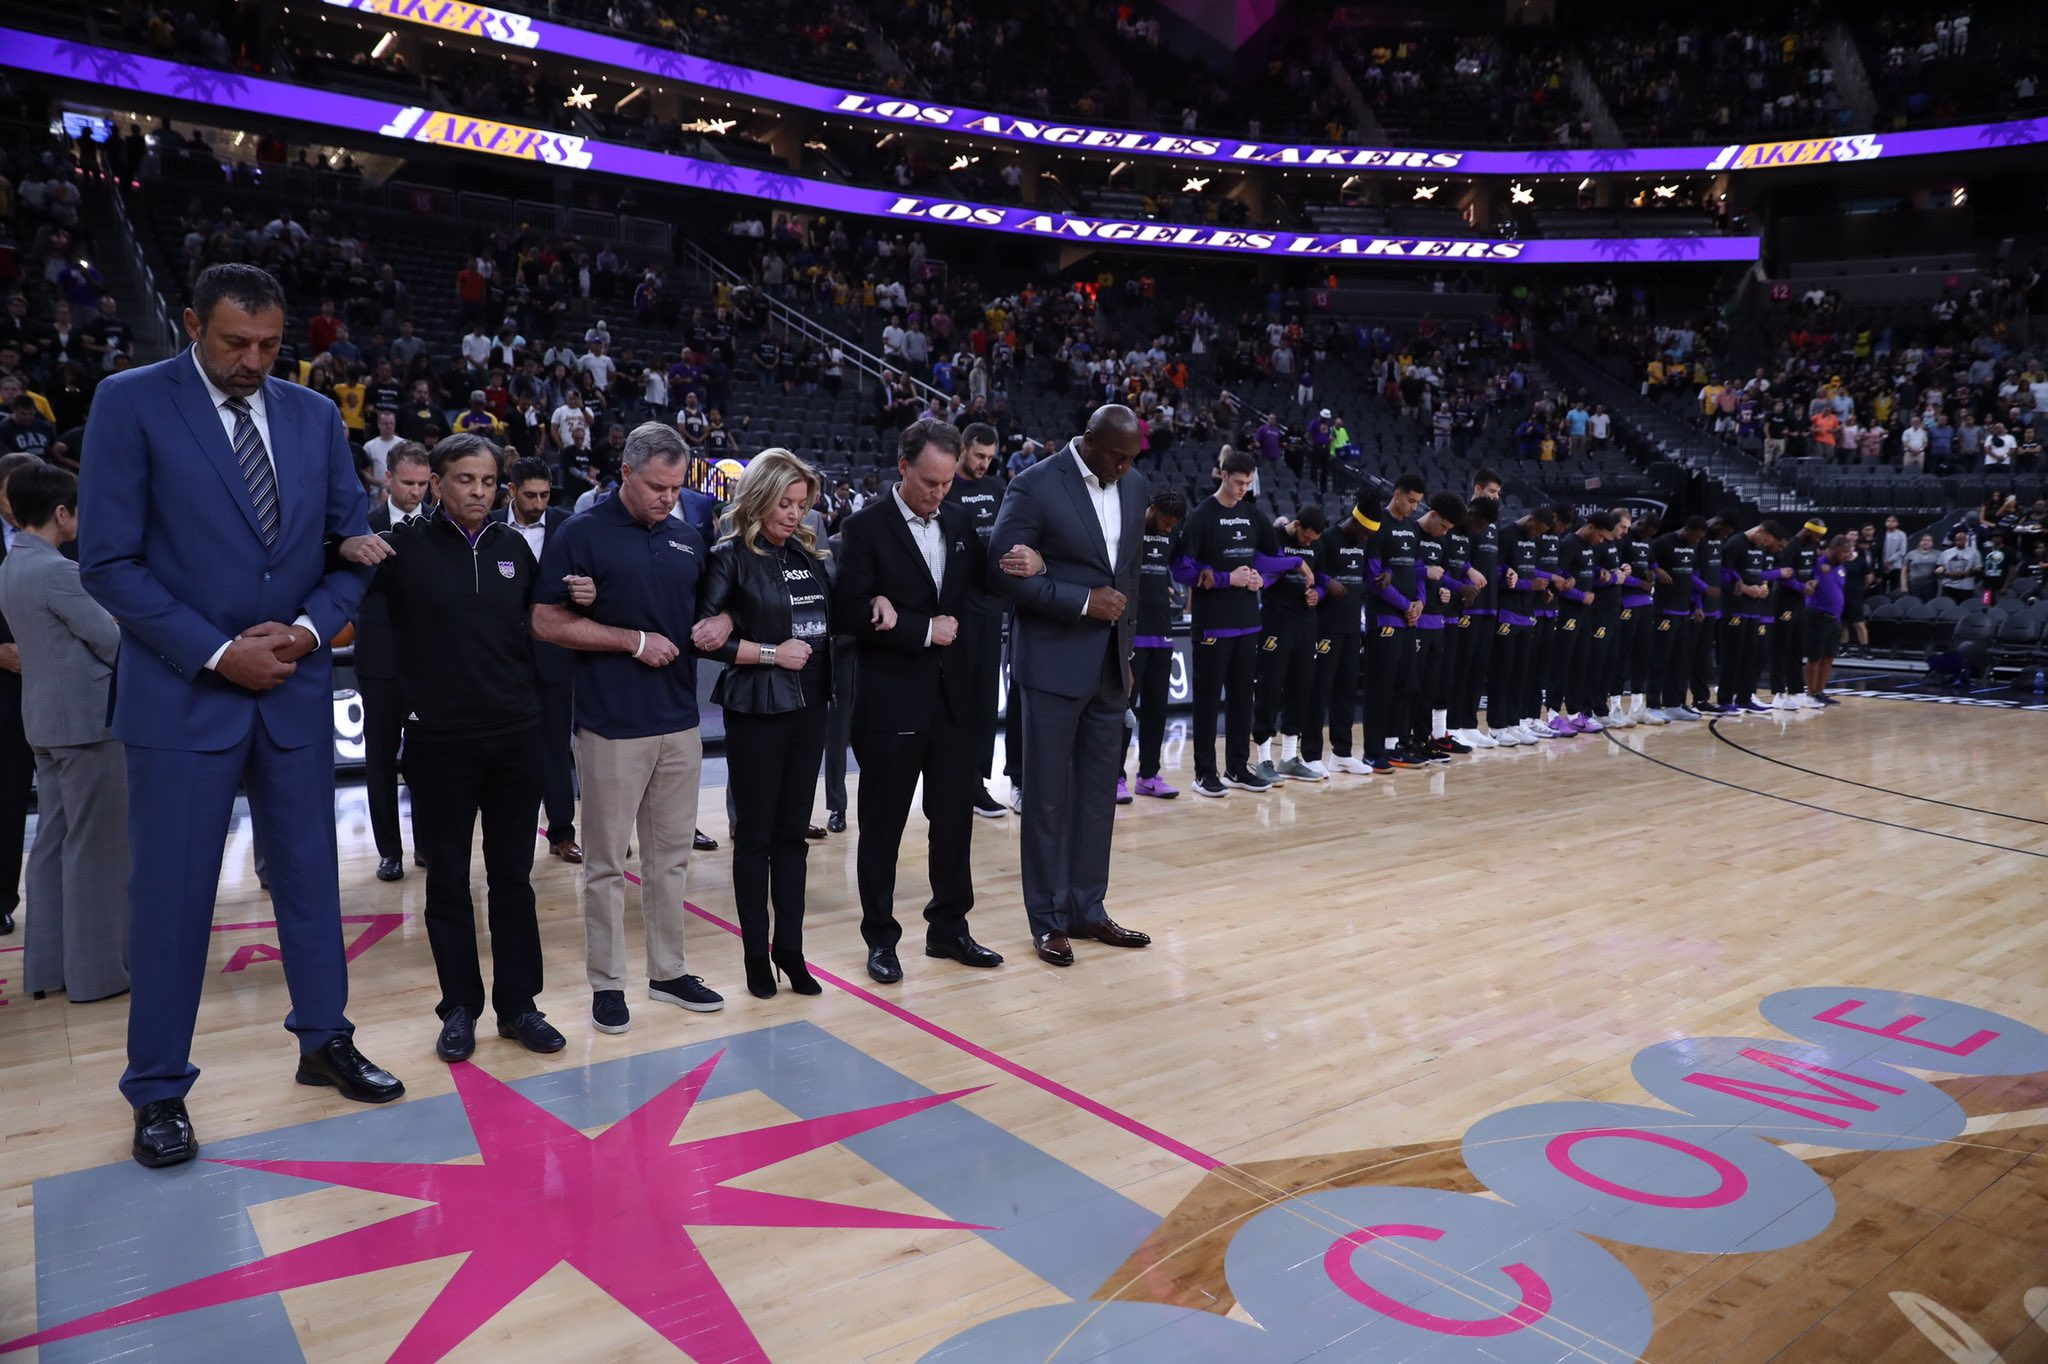 The NBA family stands arm-in-arm with the people of Las Vegas #VegasStrong https://t.co/LicLASeJiW